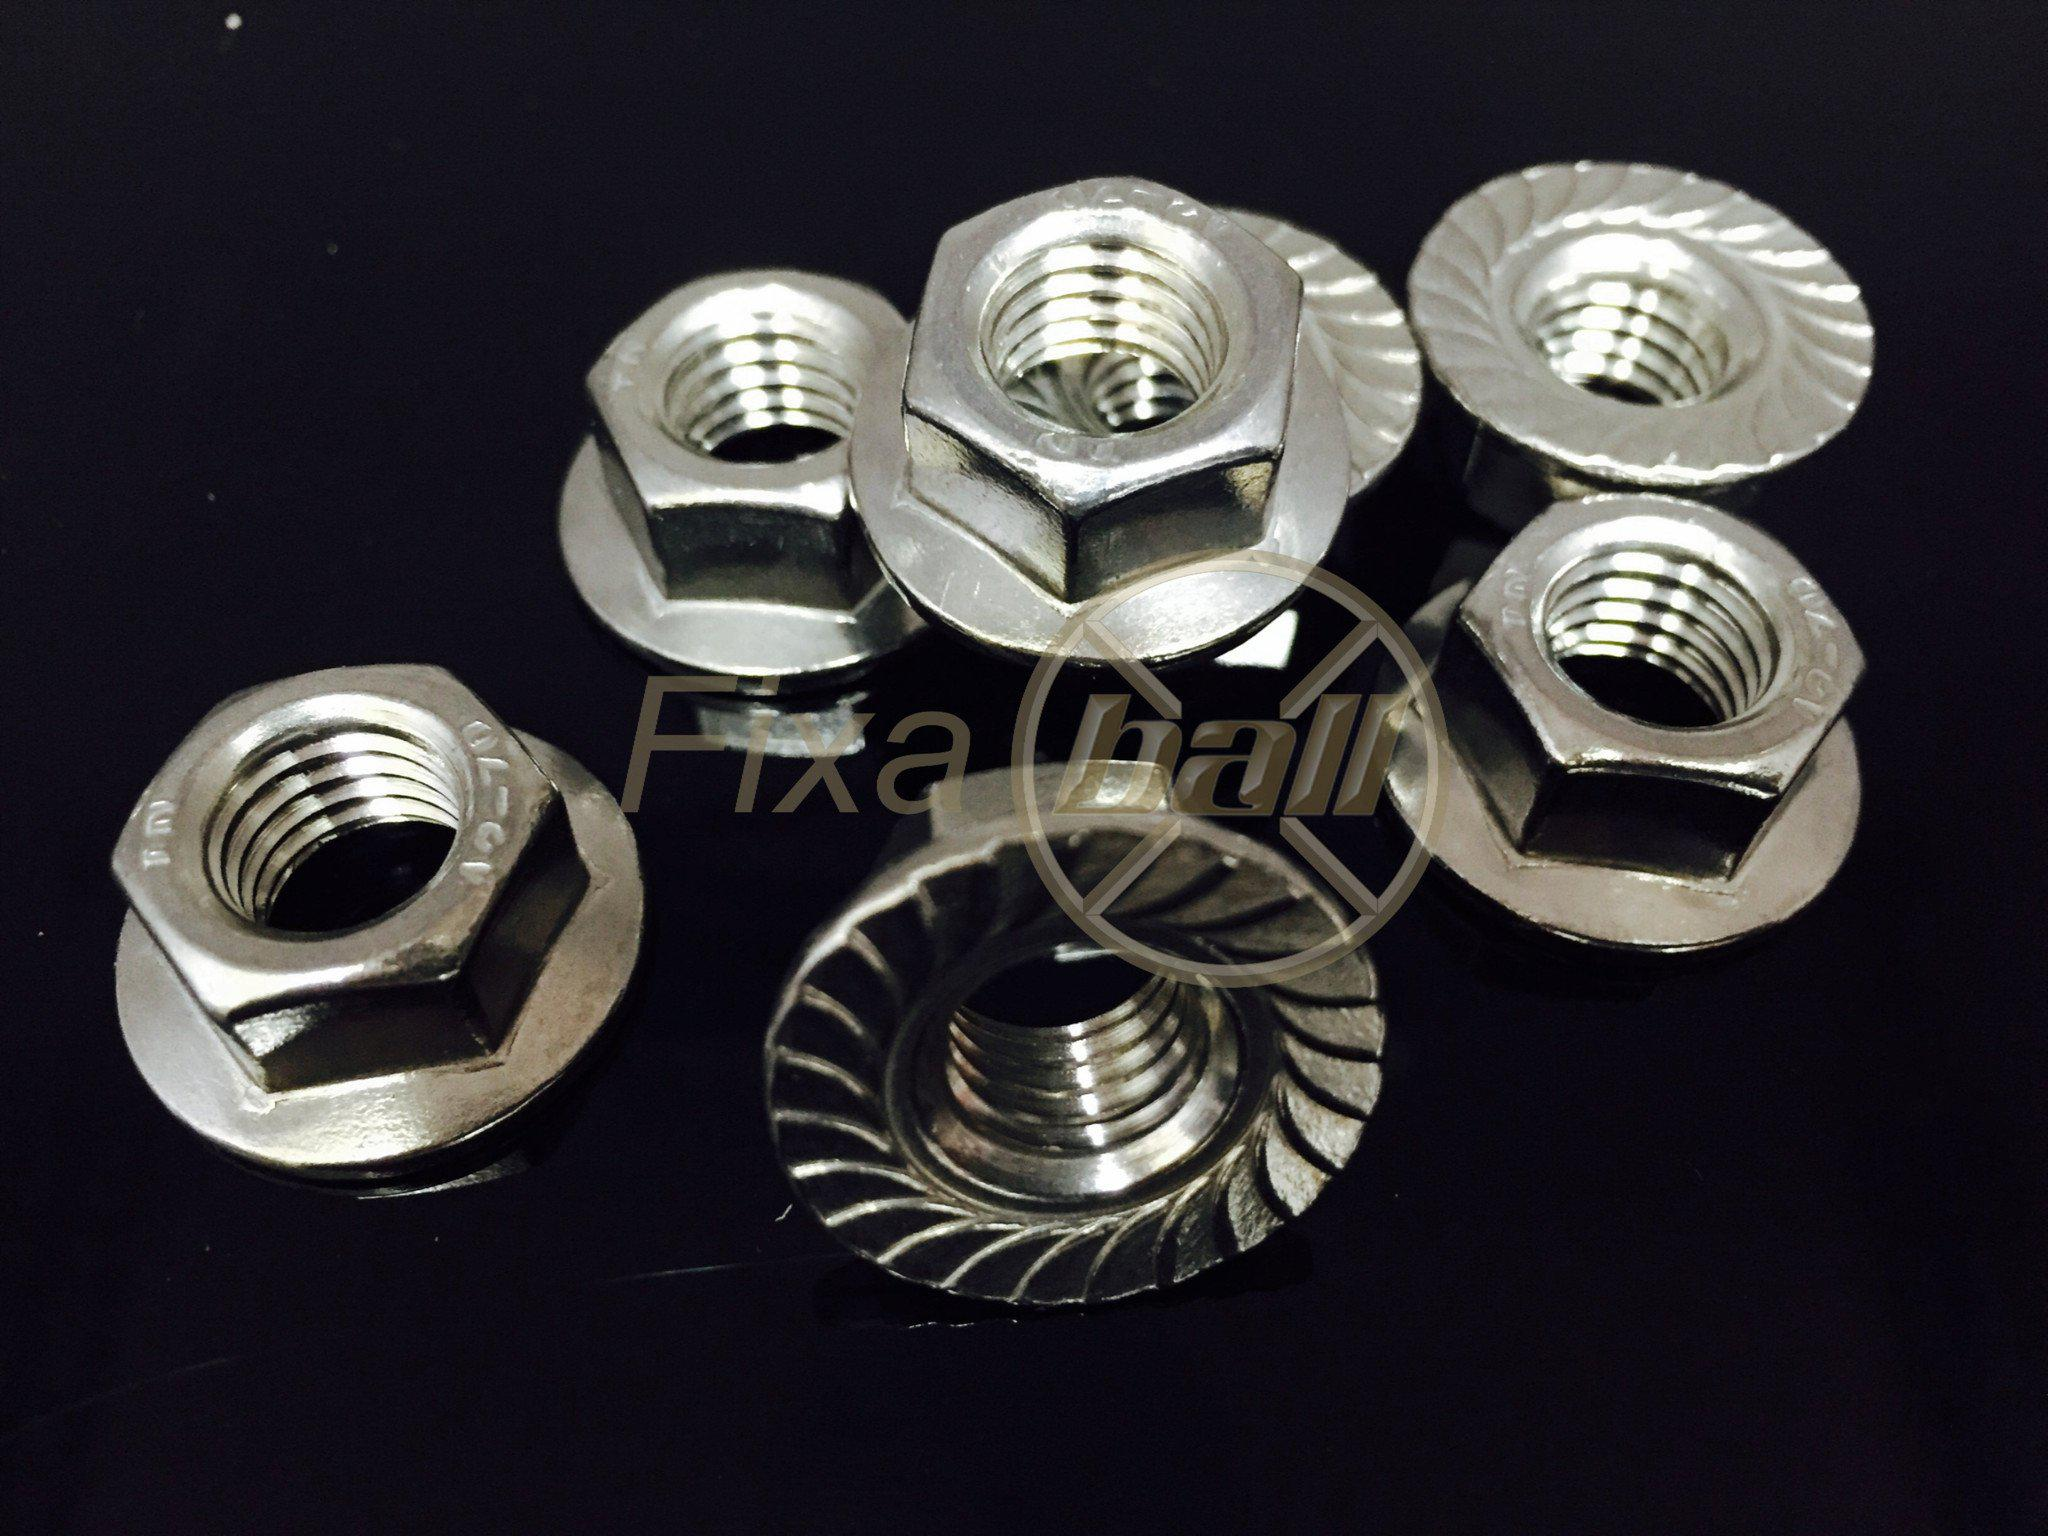 M3 - M12, Hex-Nut, Serrated Flange, A2/ 304 Stainless Steel, DIN 6923., Hardware by Fixaball